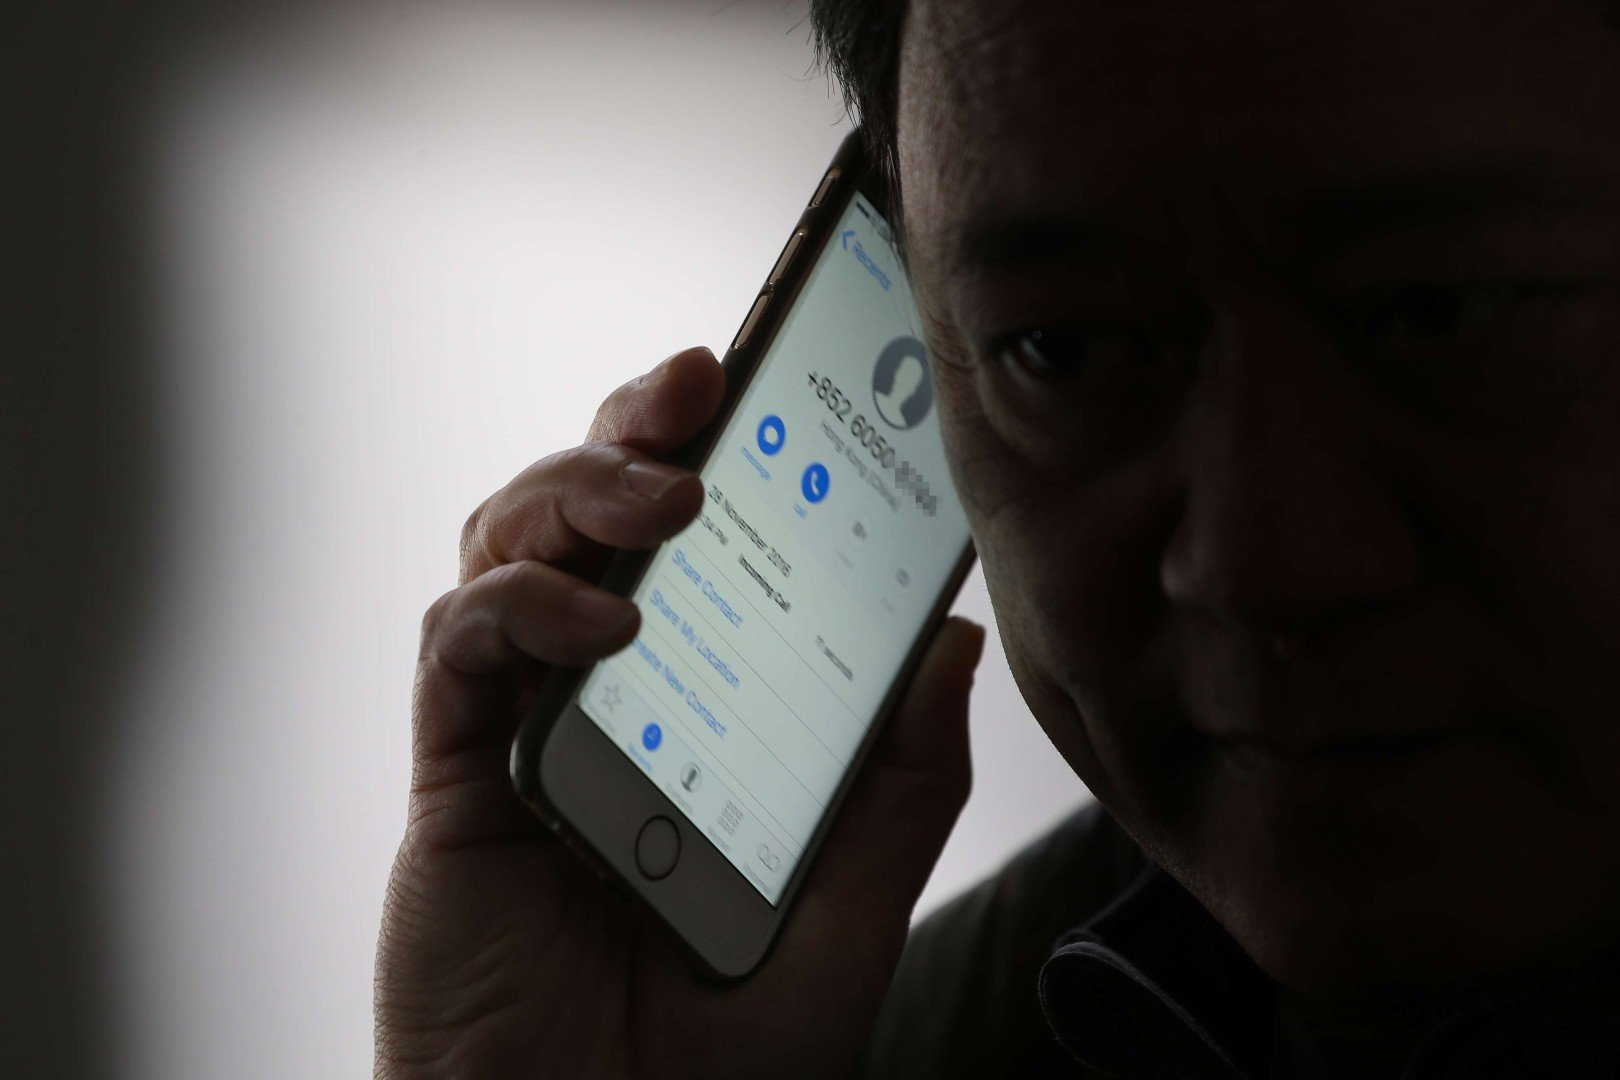 How to deal with cold-callers in Hong Kong | South China Morning Post